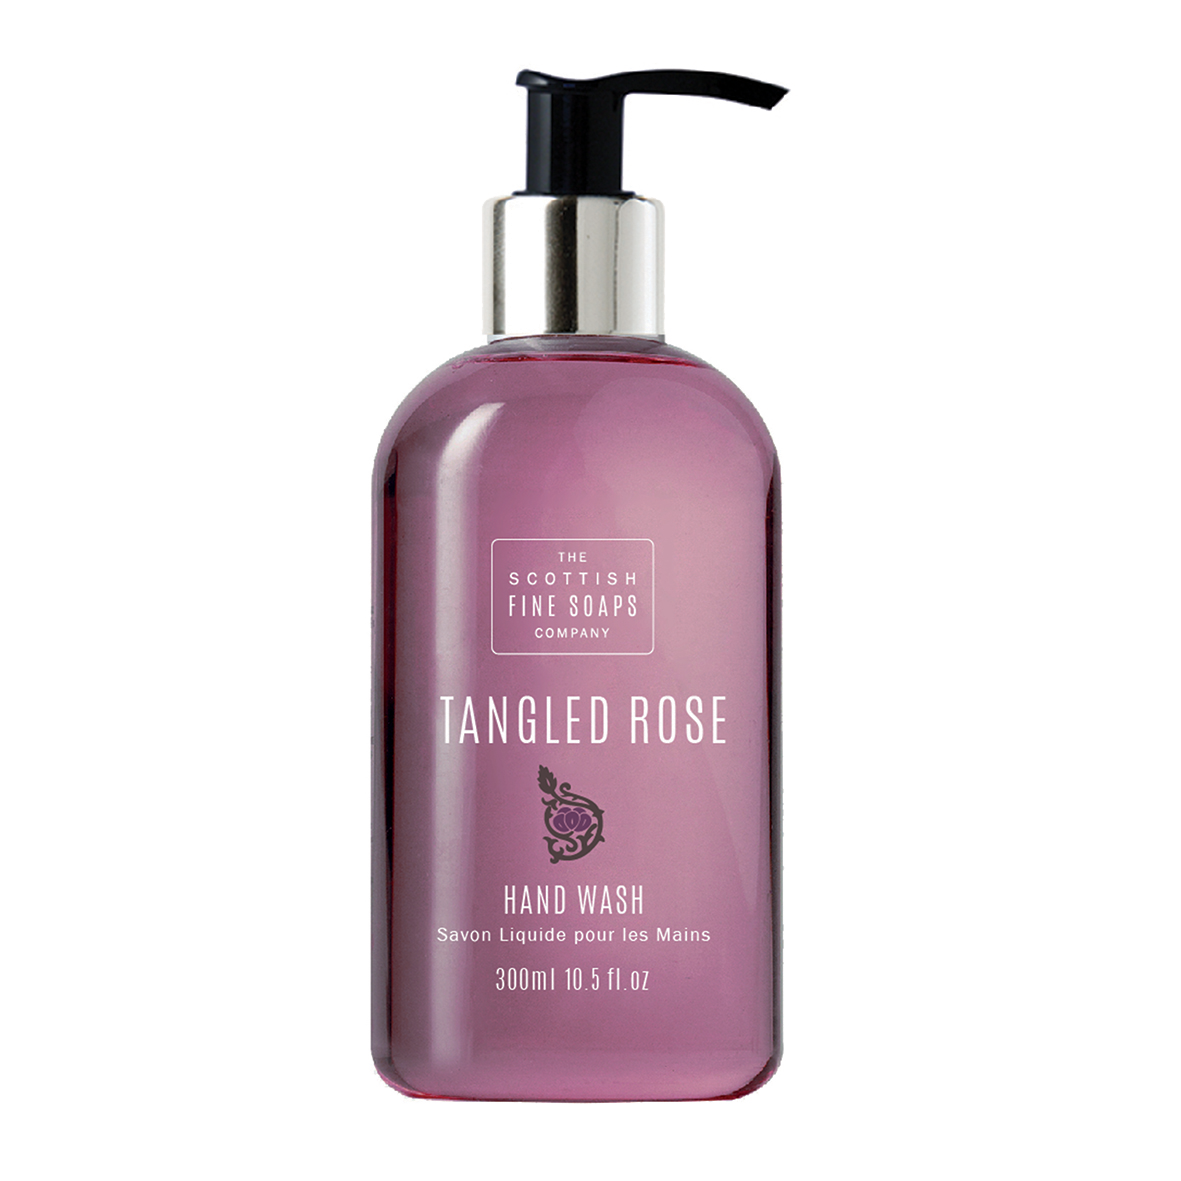 Tangled Rose Hand Wash